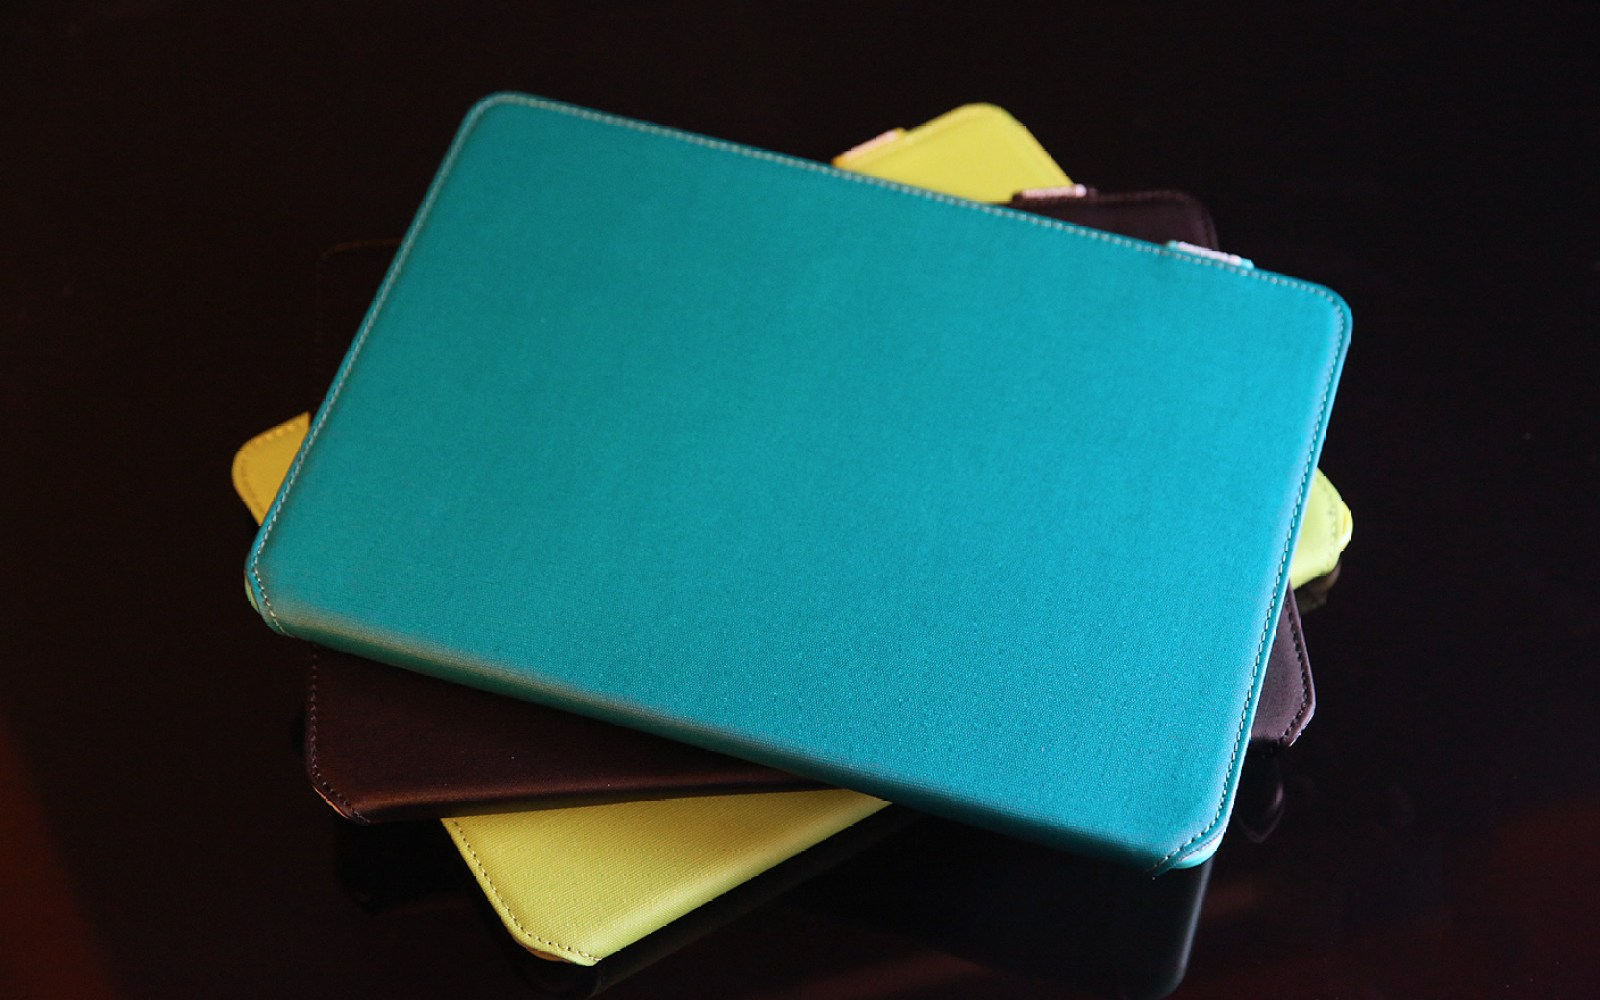 Review: SwitchEasy's Canvas returns as an affordable folio for iPad Air 2